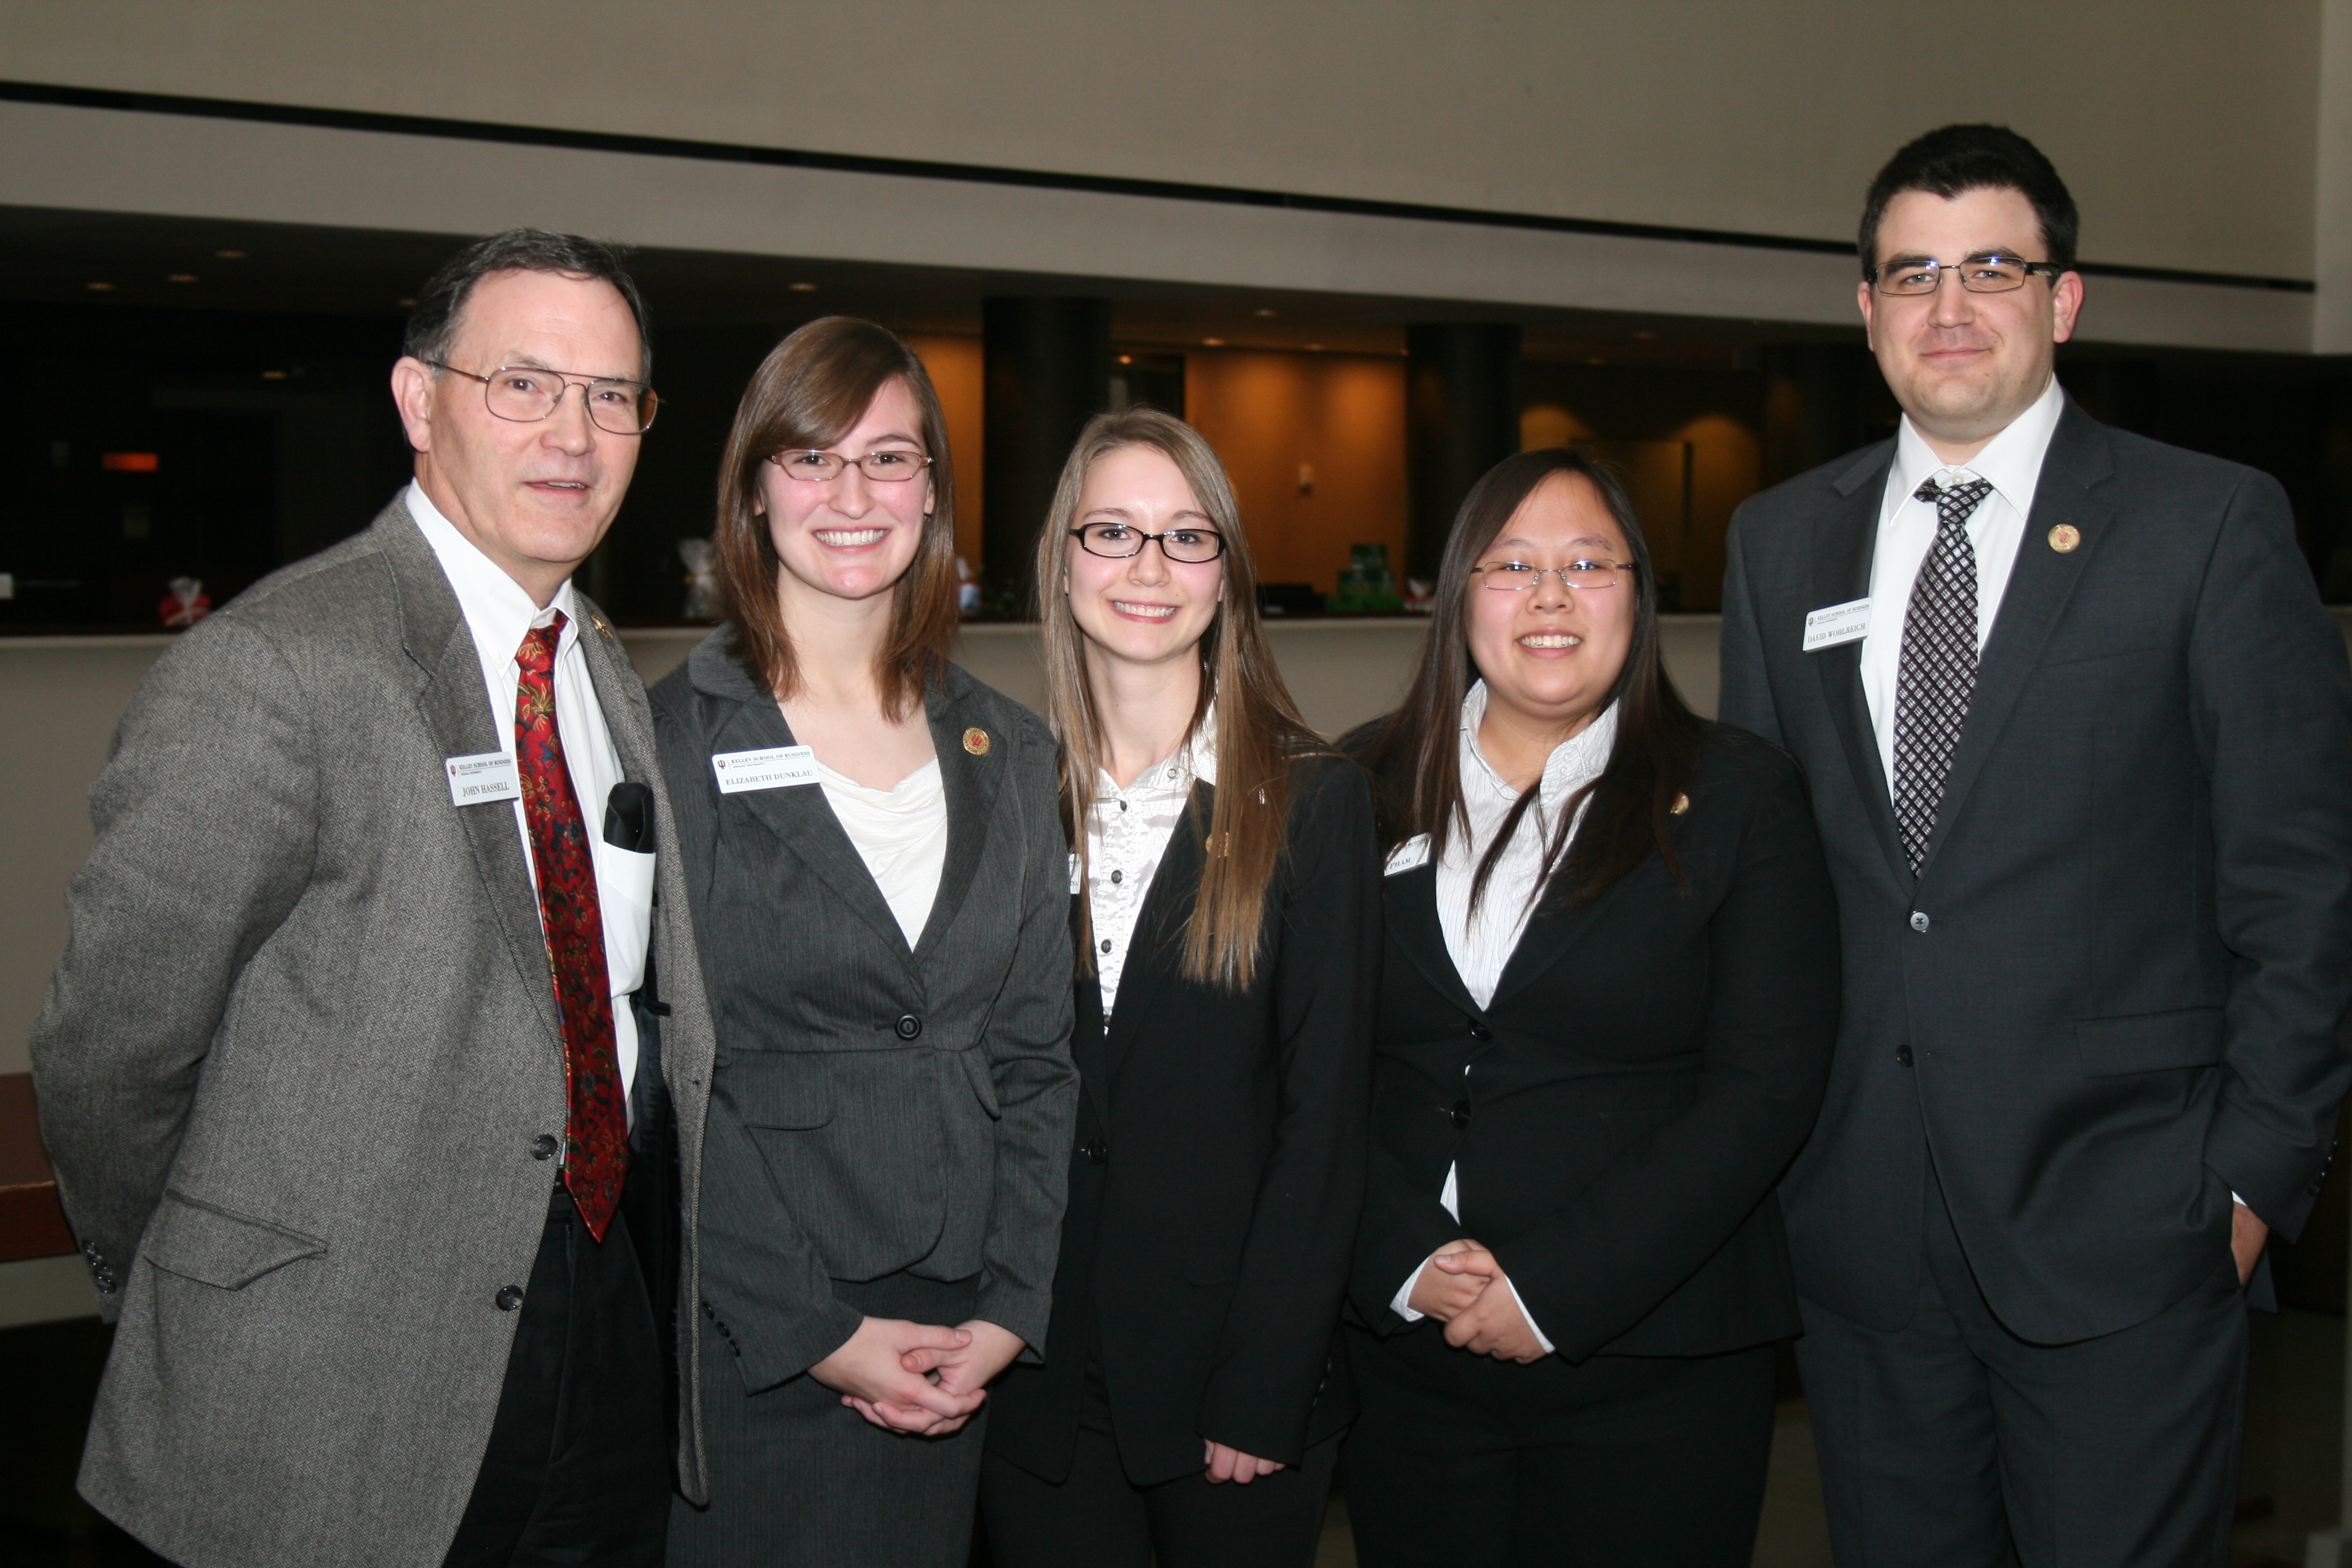 The second place team from Indiana University-Purdue University Indianapolis consisted of Elizabeth Dunklau, Daisy Pham, Ekaterina Pronina and David Wohlreich. The faculty advisor was John Hassell.